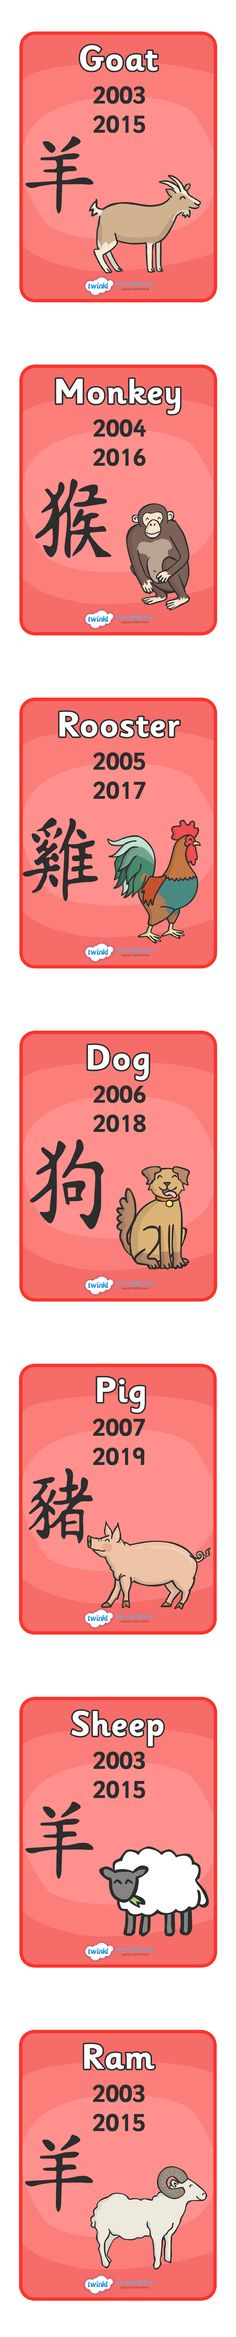 Chinese New Year Birthday Display Posters  - Pop over to our site at www.twinkl.co.uk and check out our lovely Chinese New Year primary teaching resources! chinese new year, chinese birthdays, chinese years, birthday posters, chinese birthday posters #chinese_new_year #teaching_resources